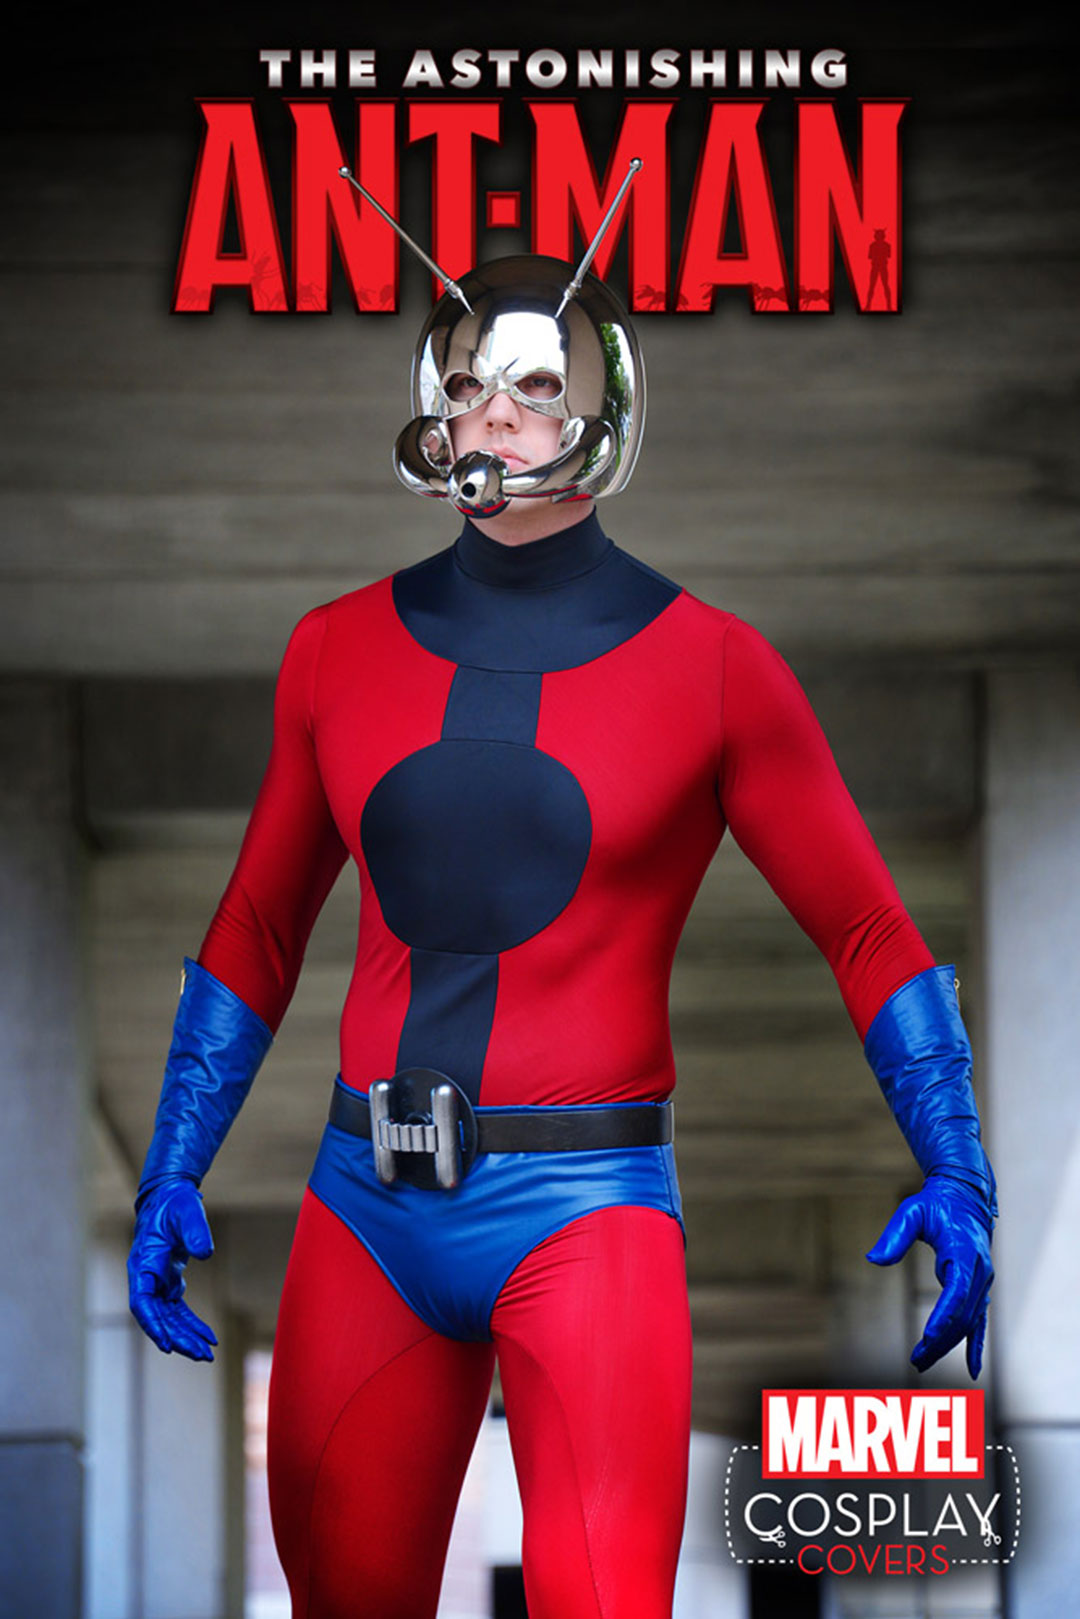 Couverture-Marvel-cosplay (17)